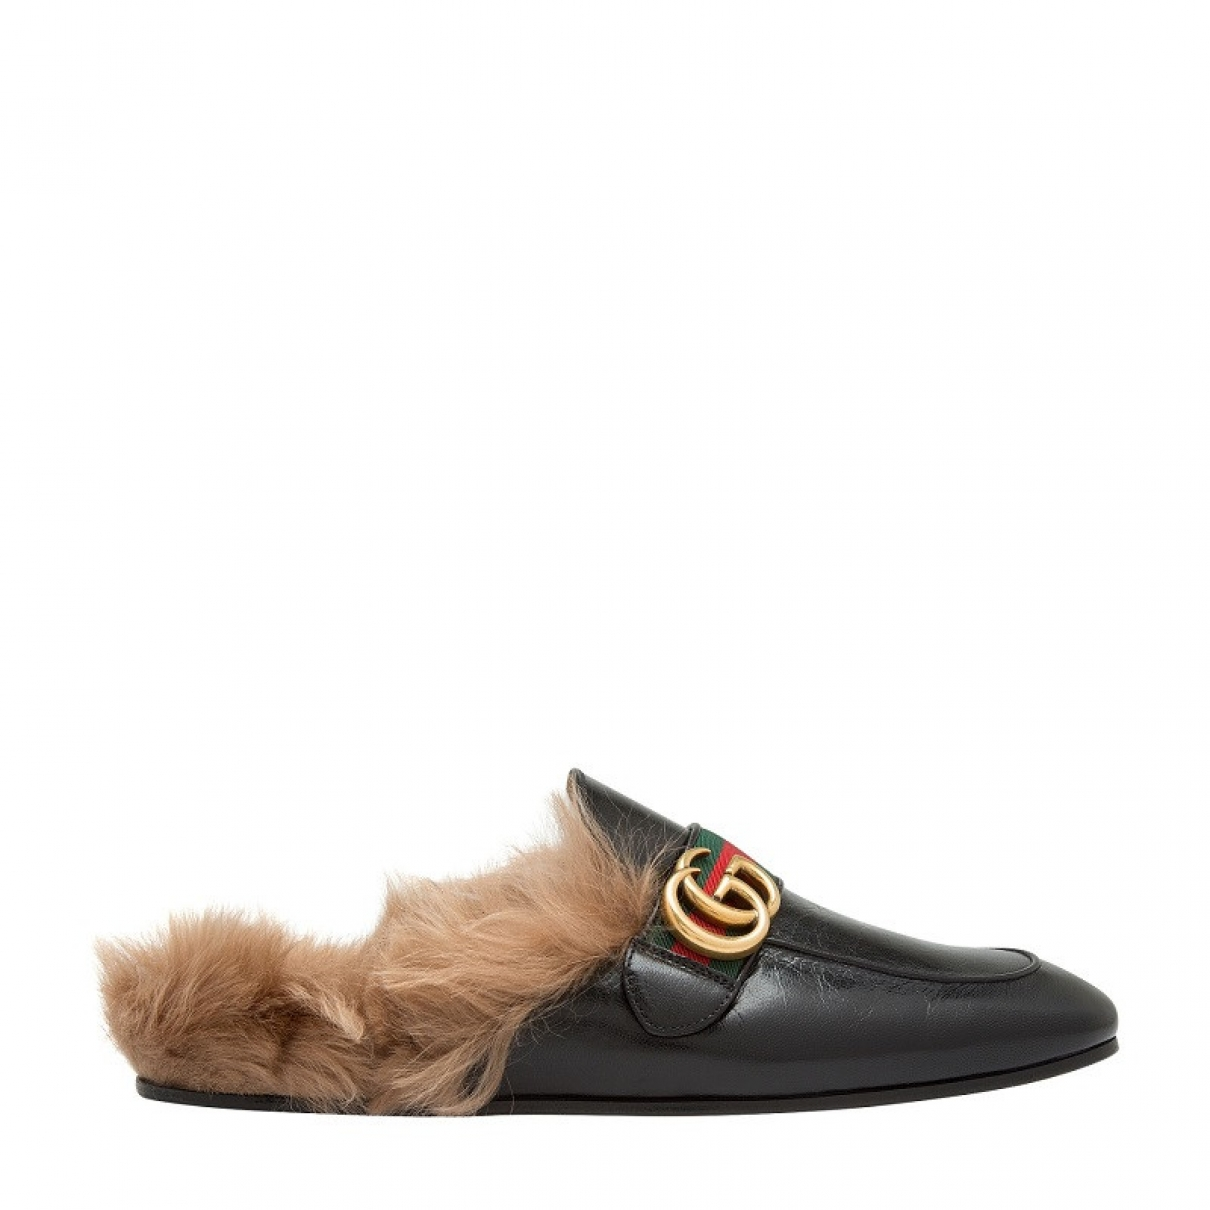 Gucci Princetown Black Leather Flats for Men 6 UK